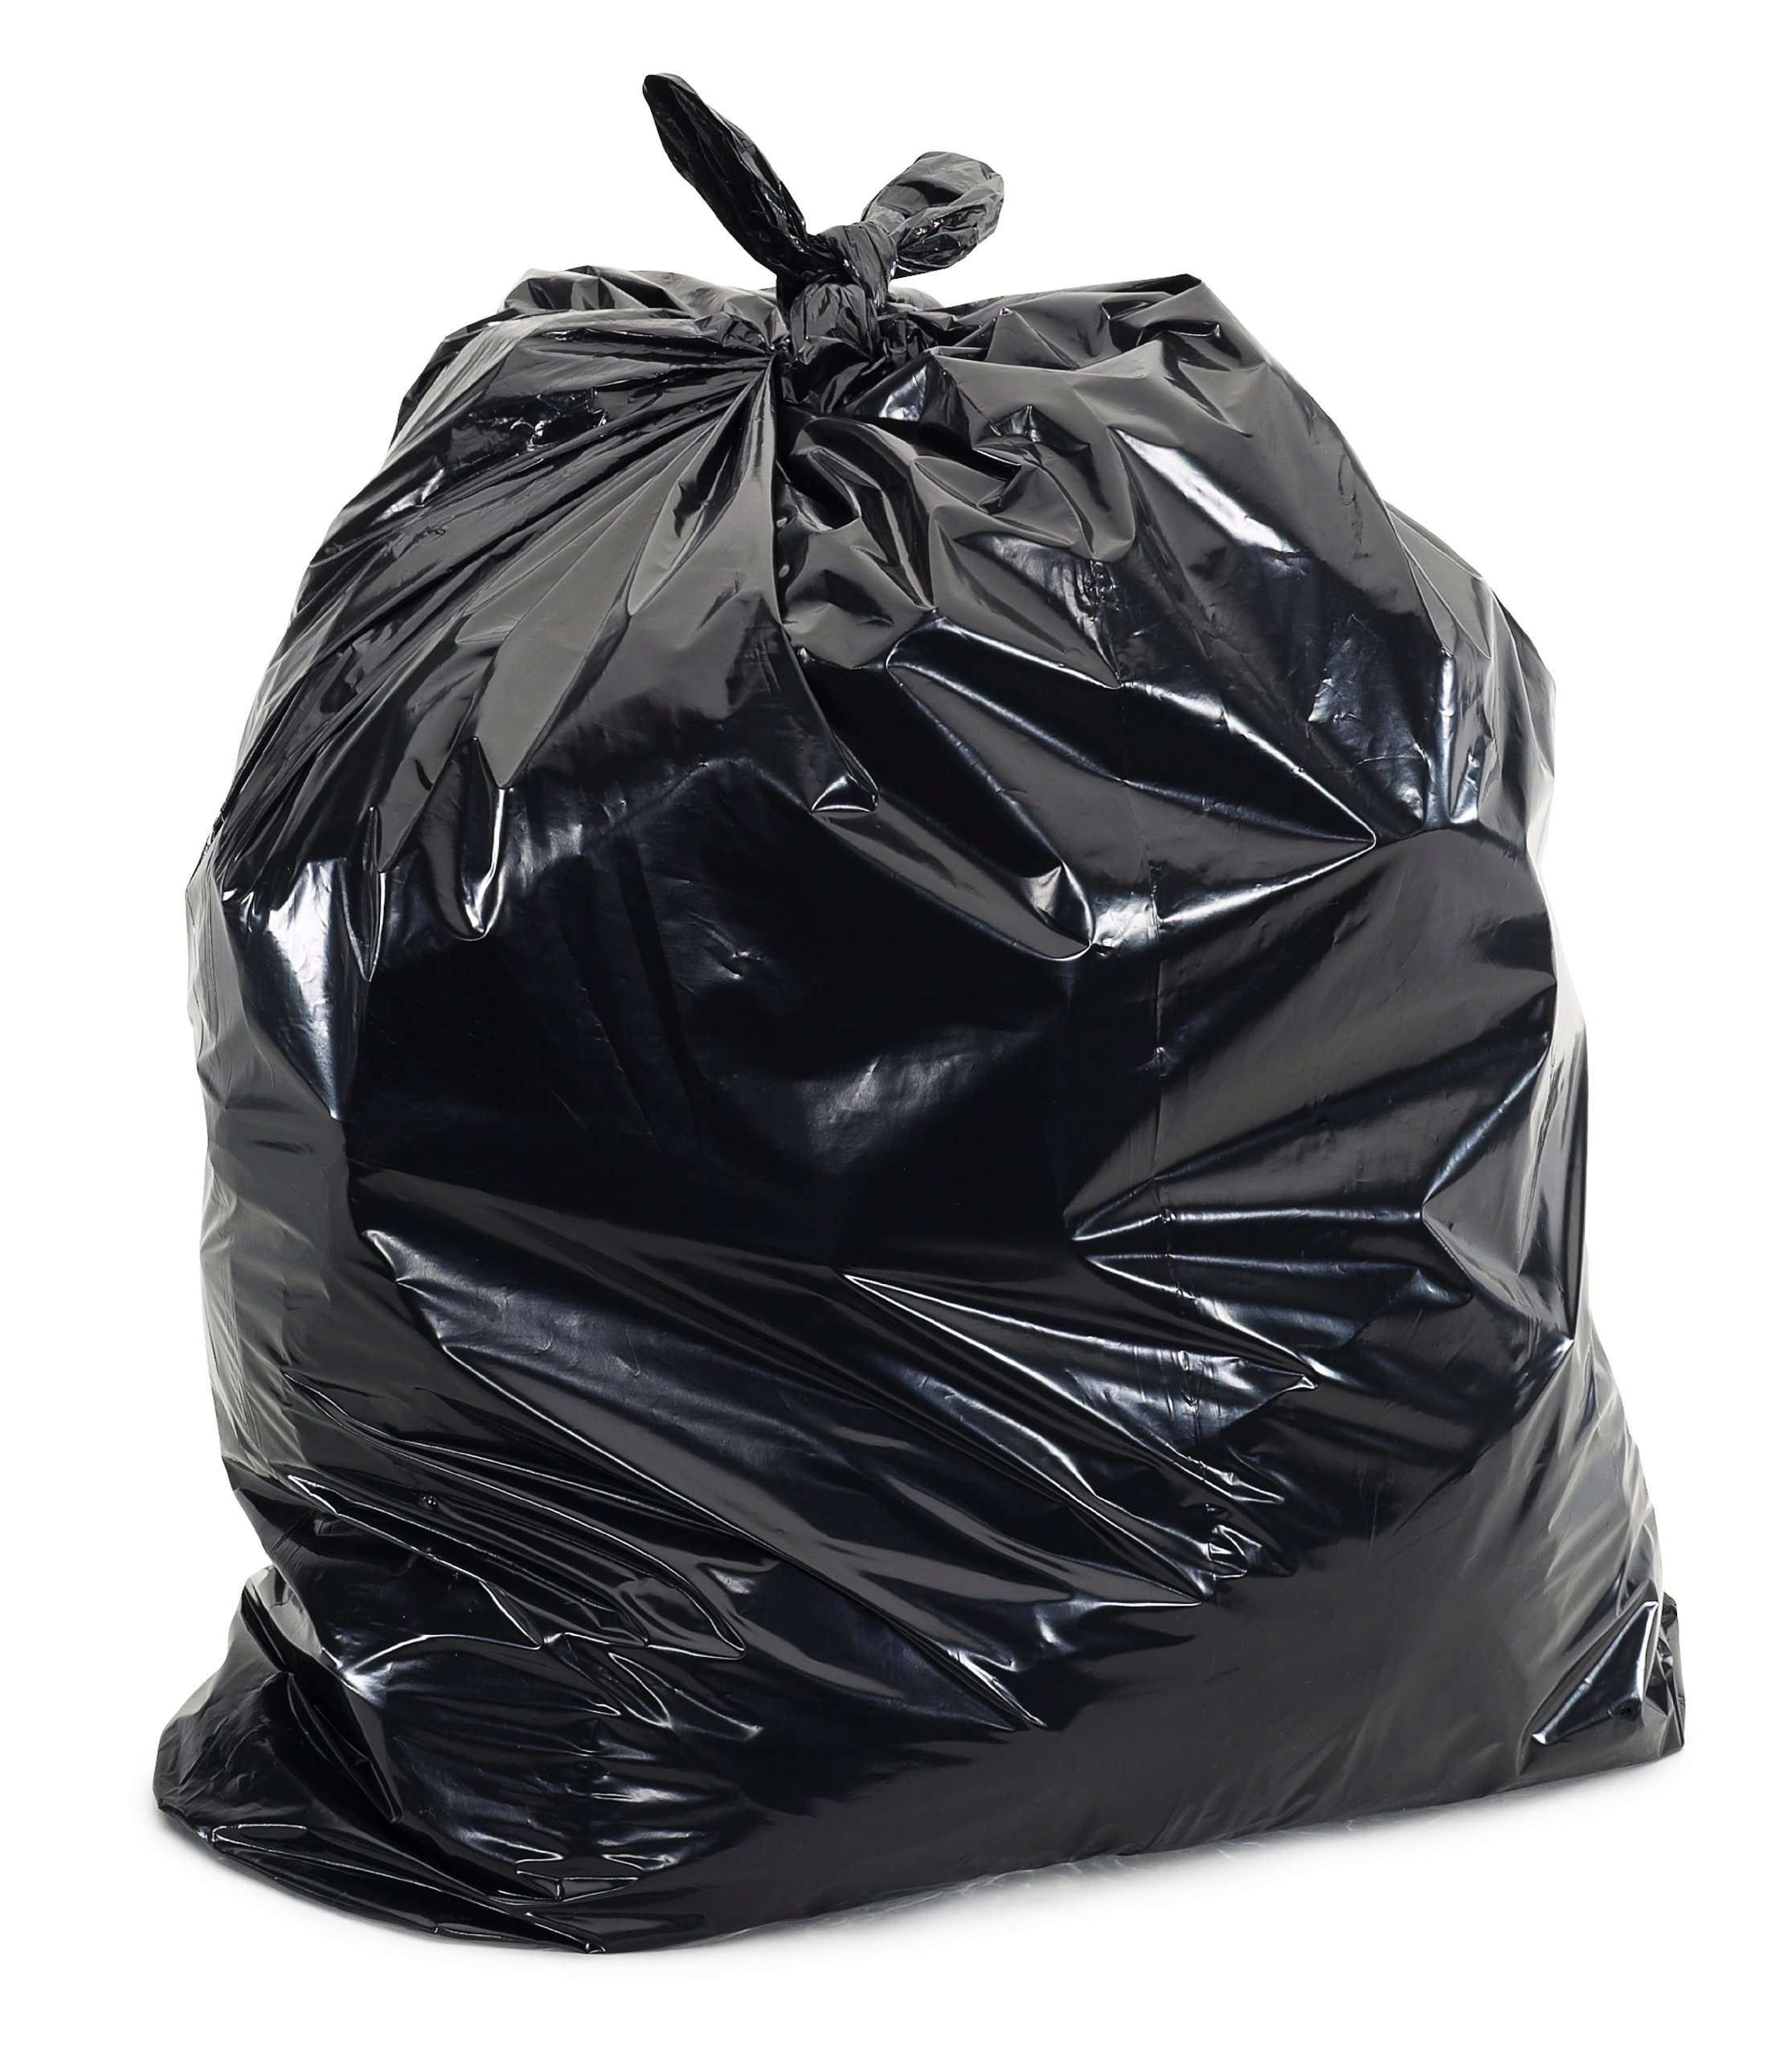 Plasticplace Black 25-30 Gallon Trash Bags 30'' x 36'' 100/Case 2.0 Mil